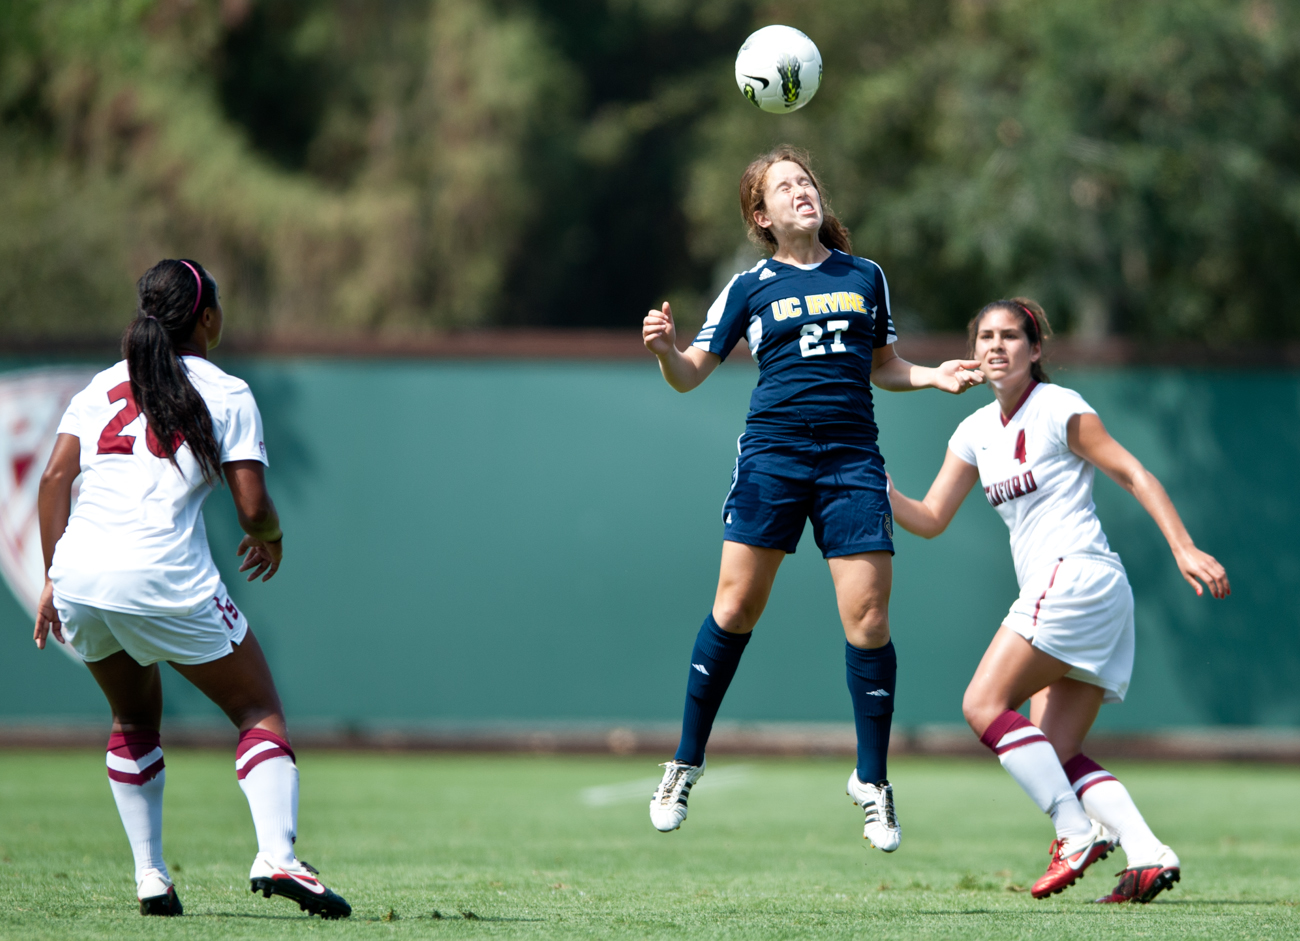 09-11-11_Womens_Soccer_ICO_Stanford_Roeder_60